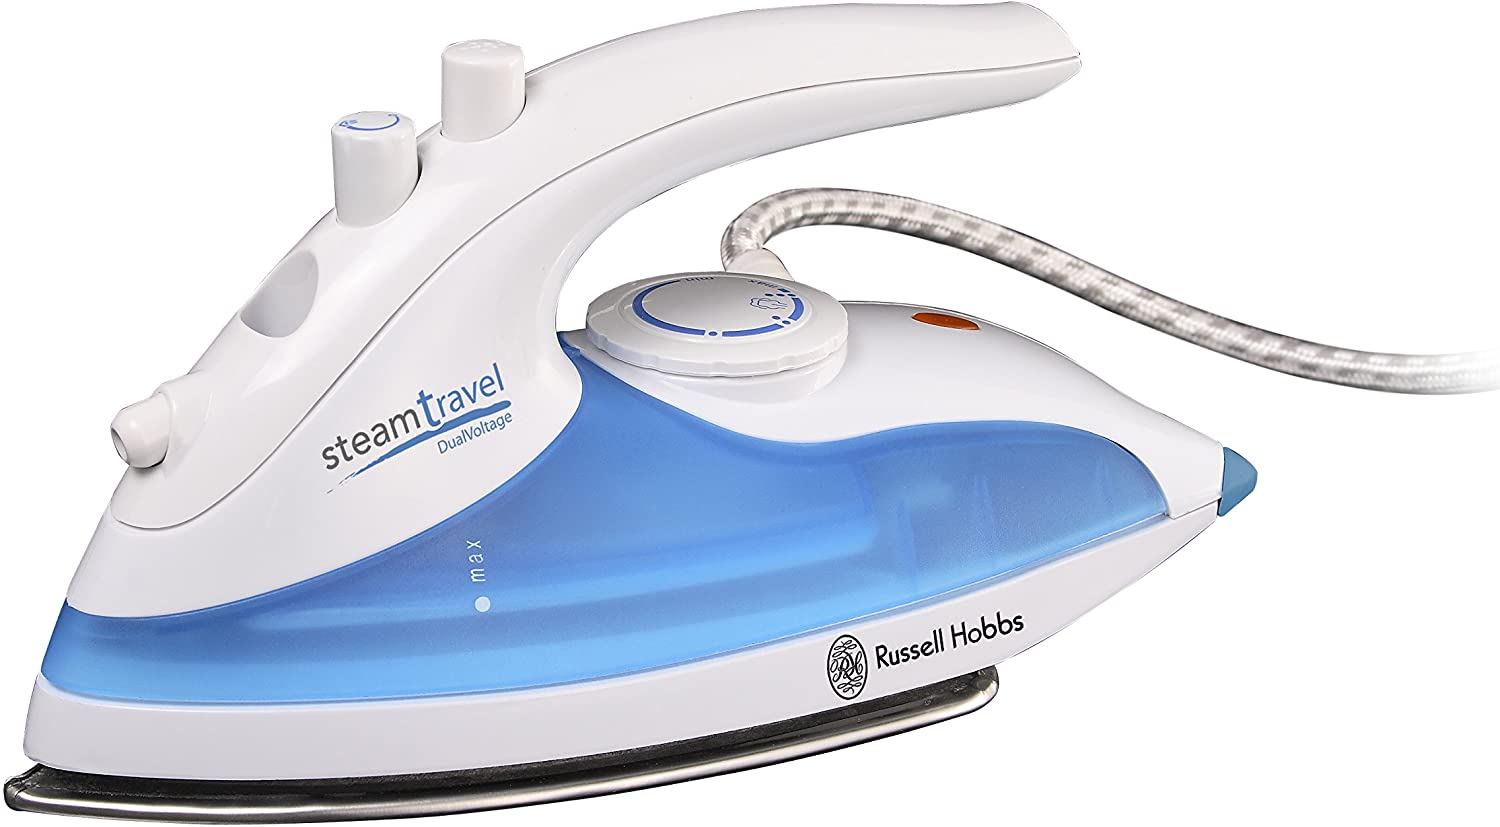 Russell Hobbs Steam Glide Travel Iron 22470, 760 W - White and Blue